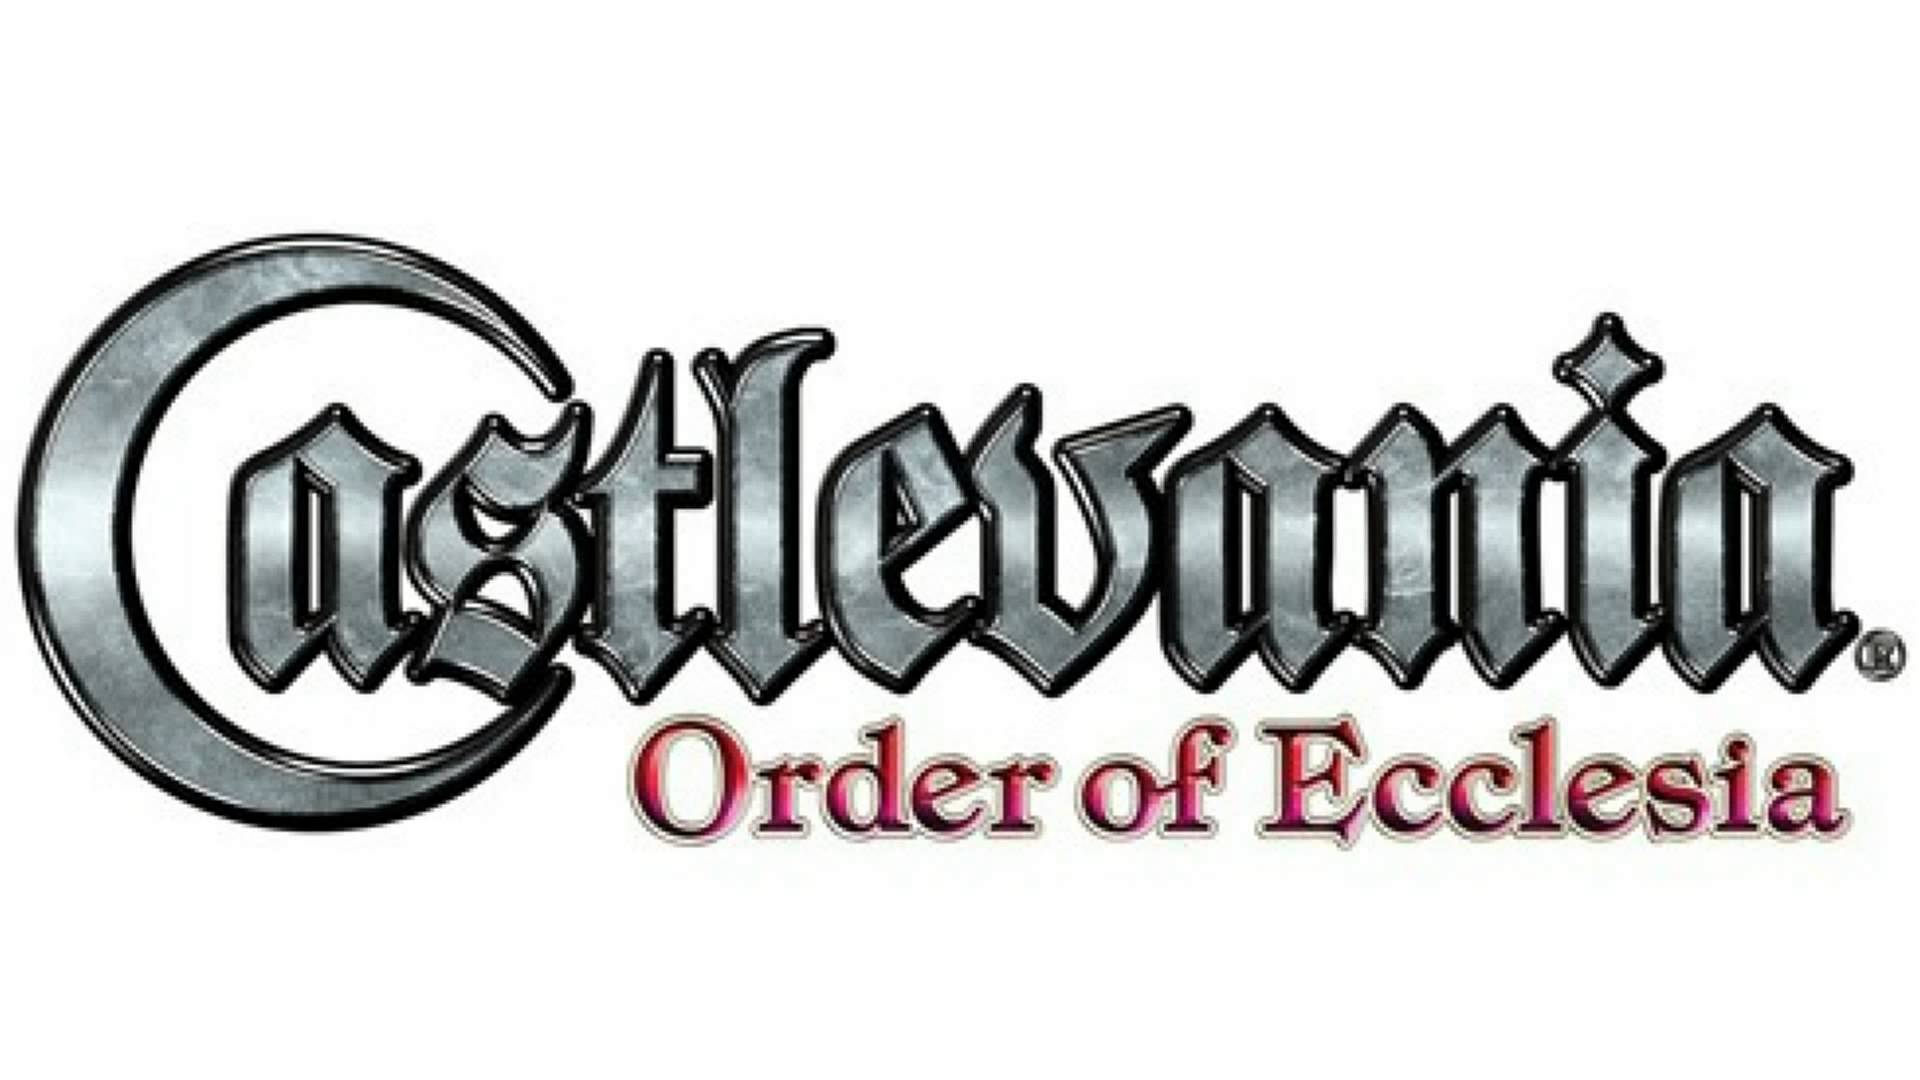 A Clashing of Waves - Castlevania: Order of Ecclesia